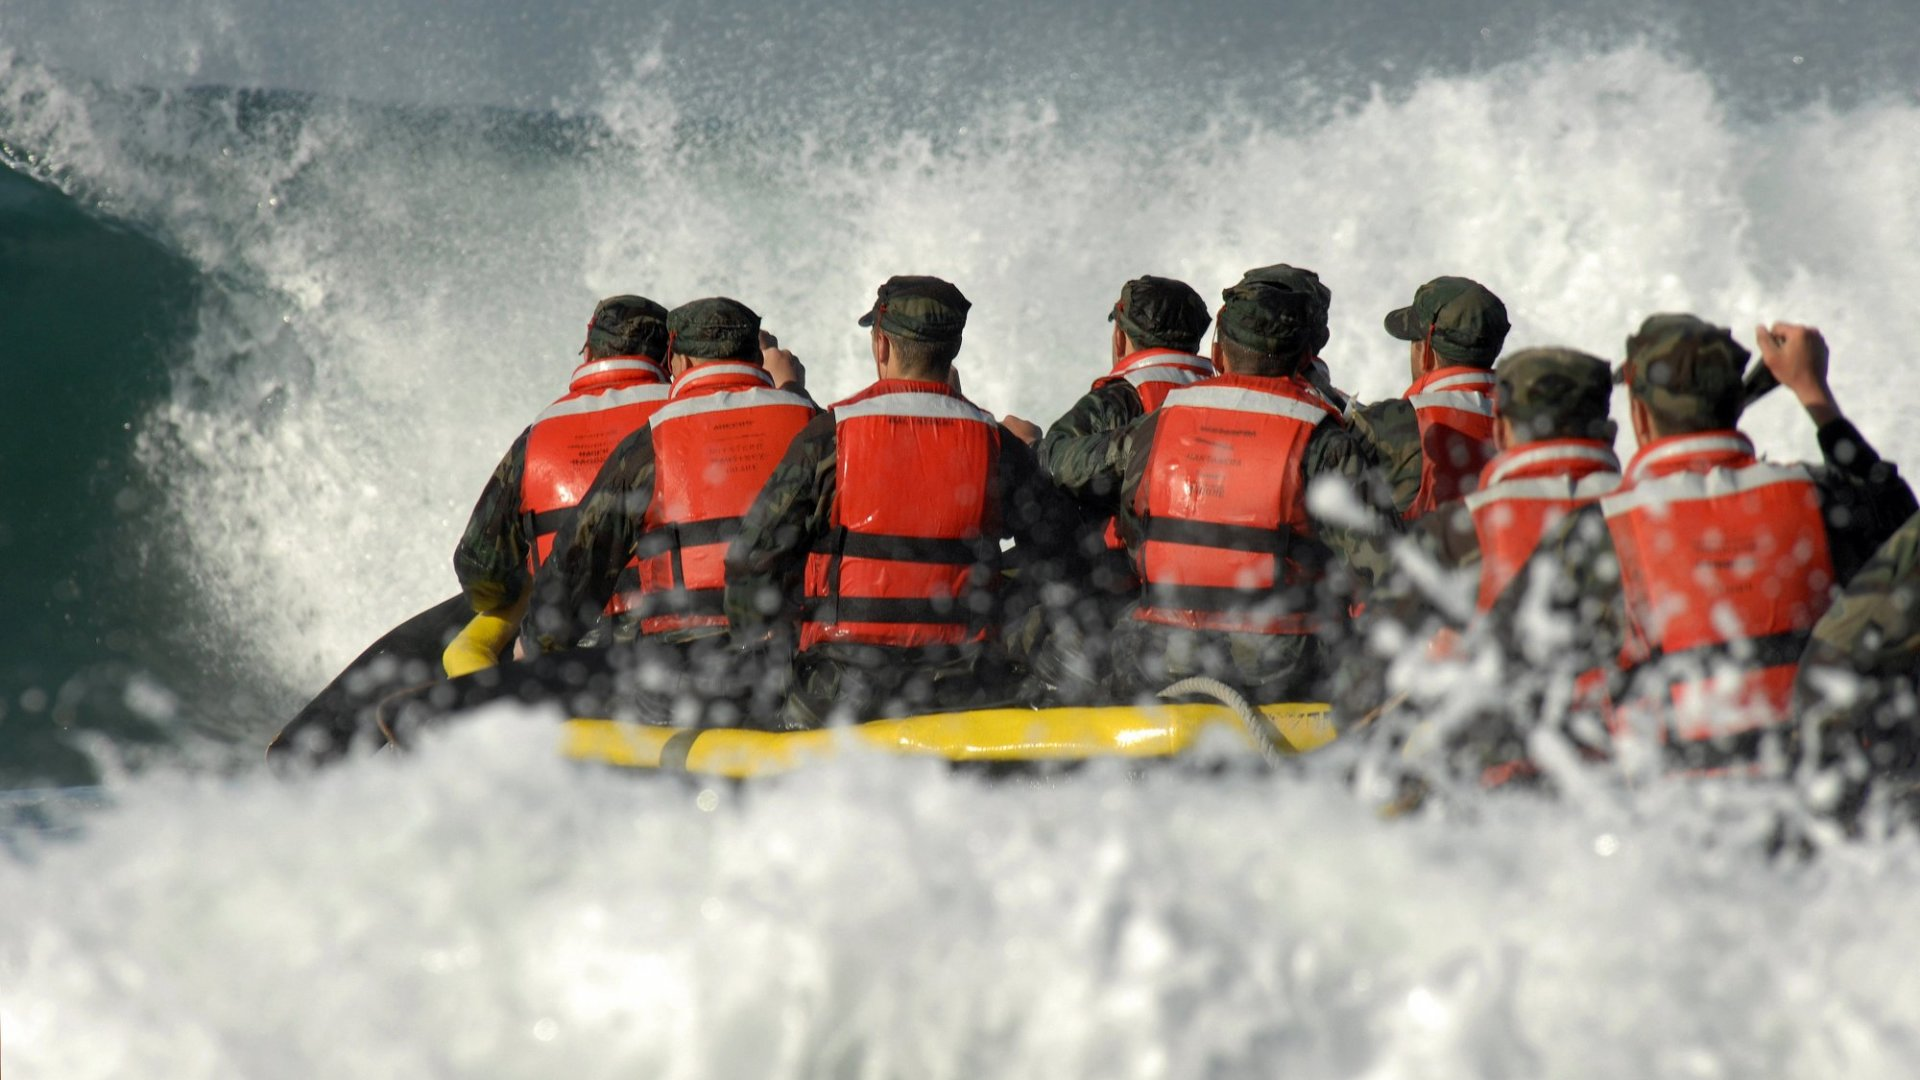 7 Mental Toughness Tips From a Former Navy SEAL Trainer